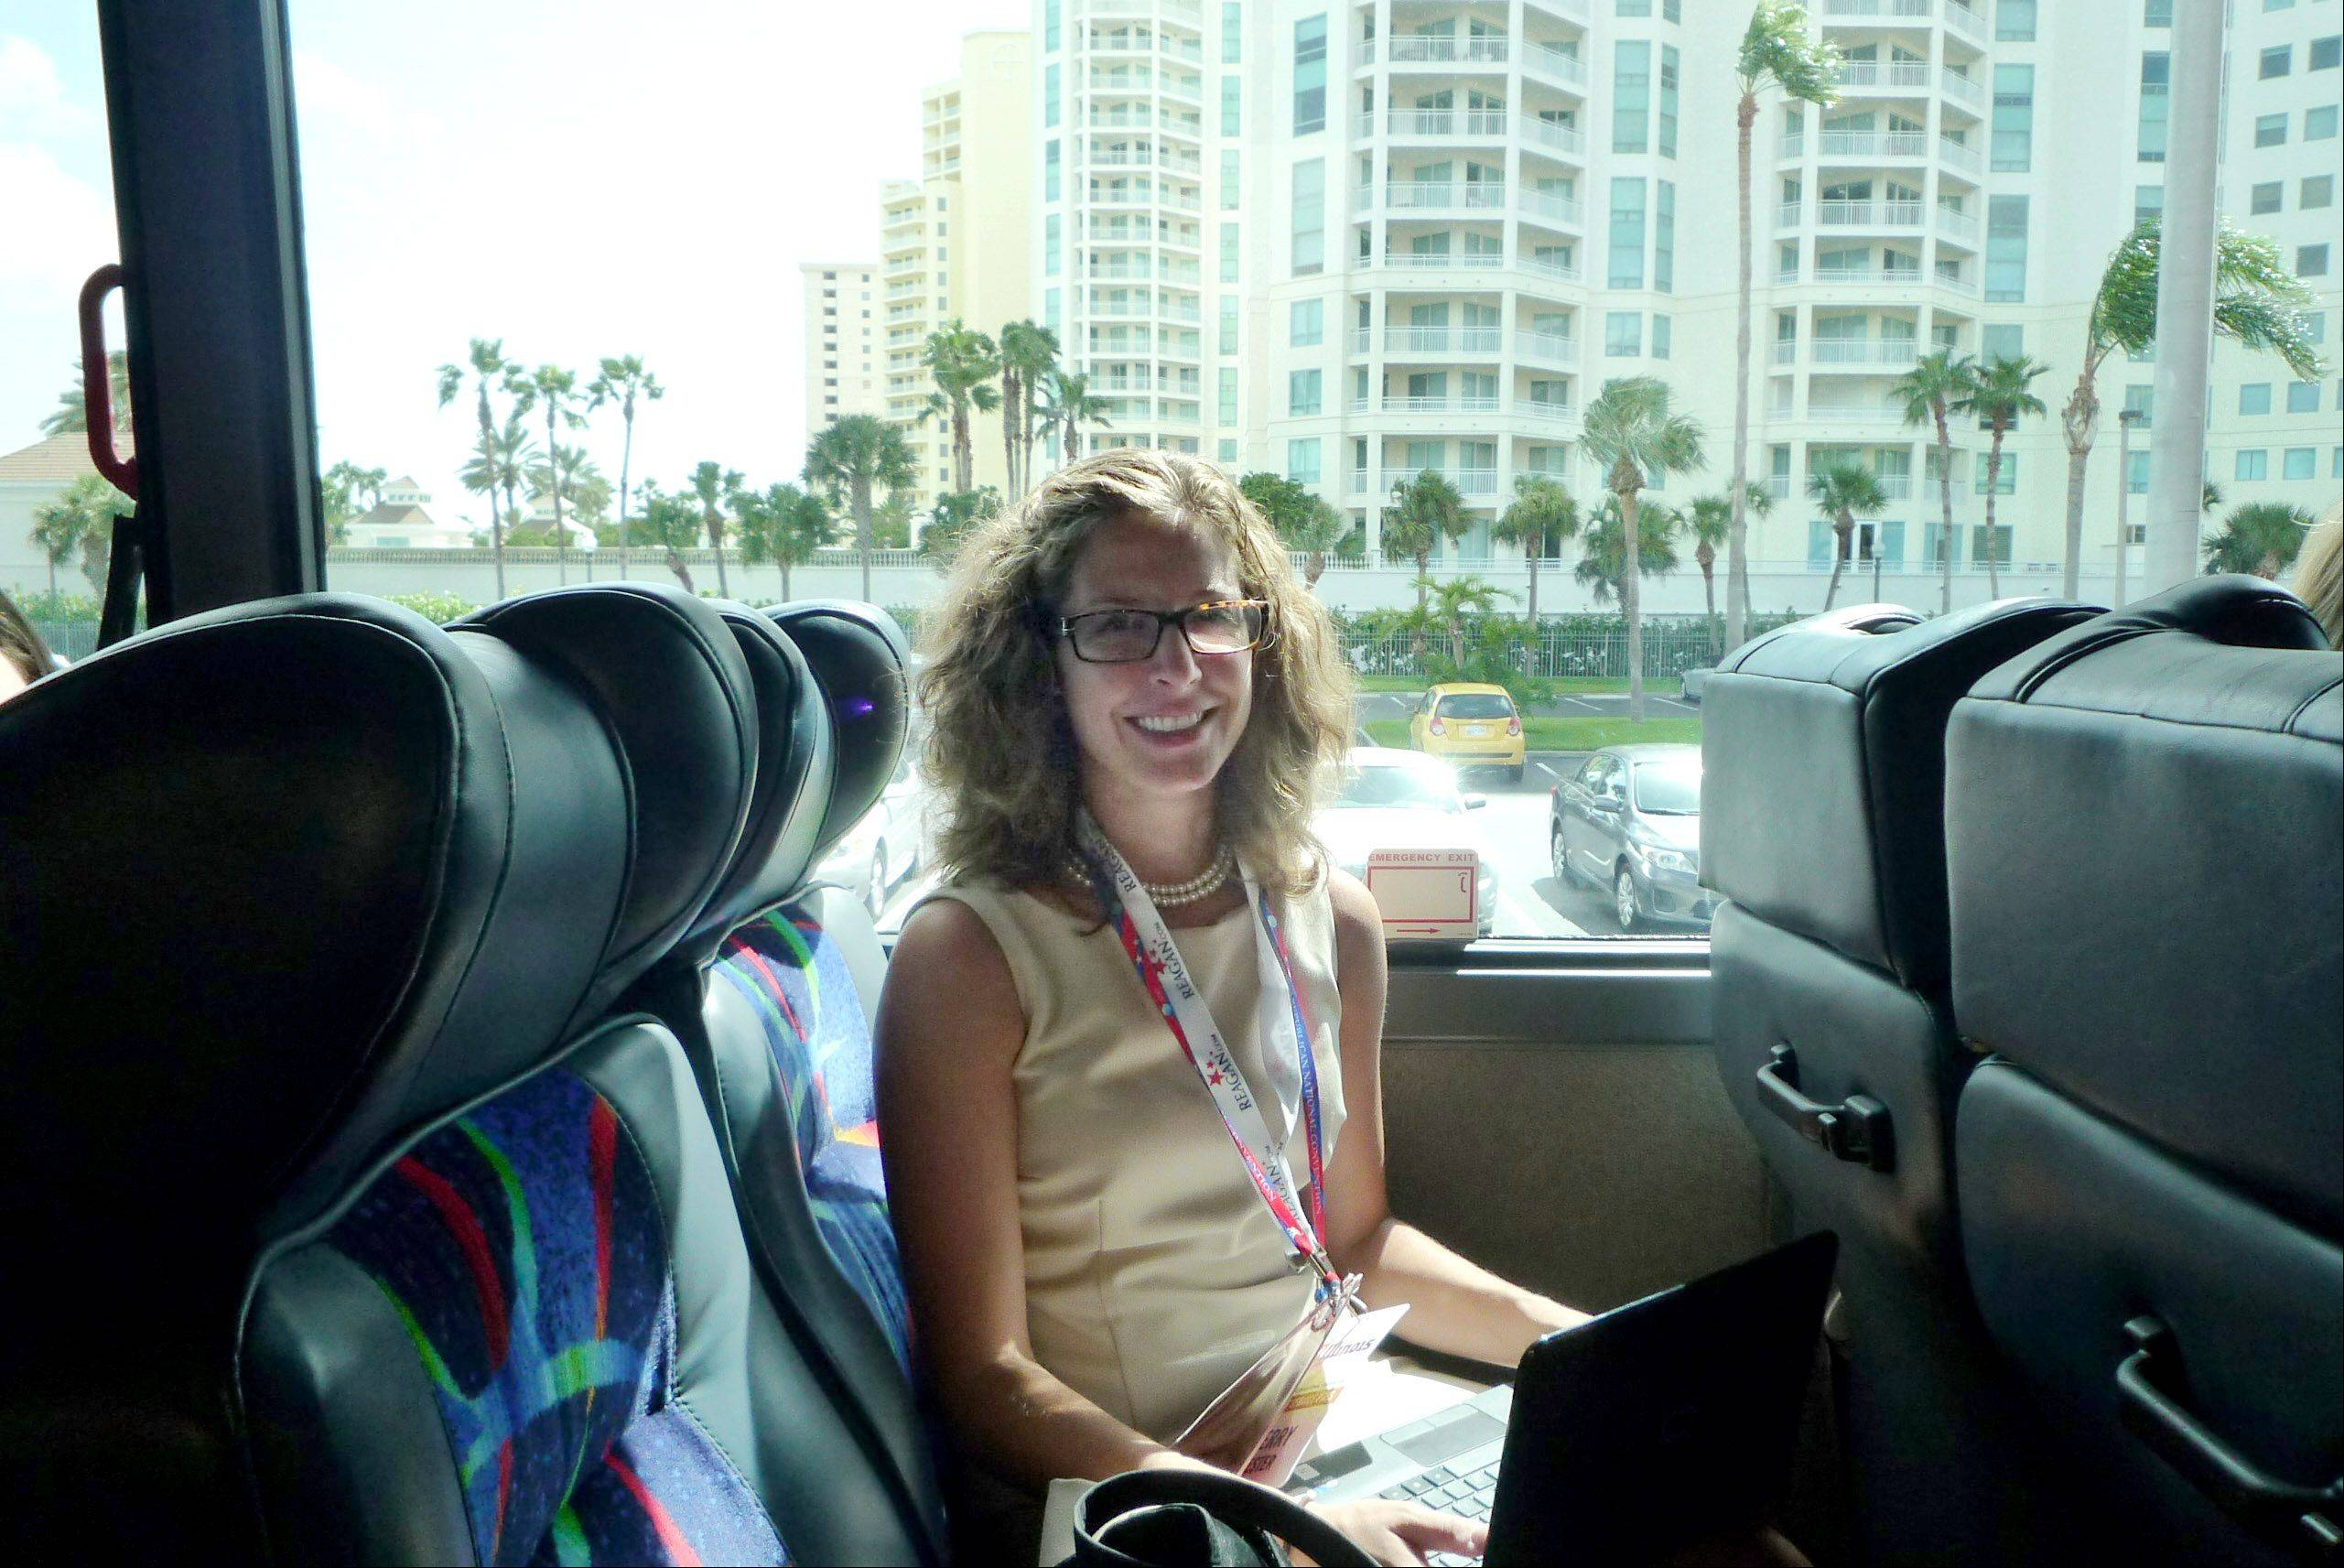 Postcard from Tampa: Busing headaches and floor passes